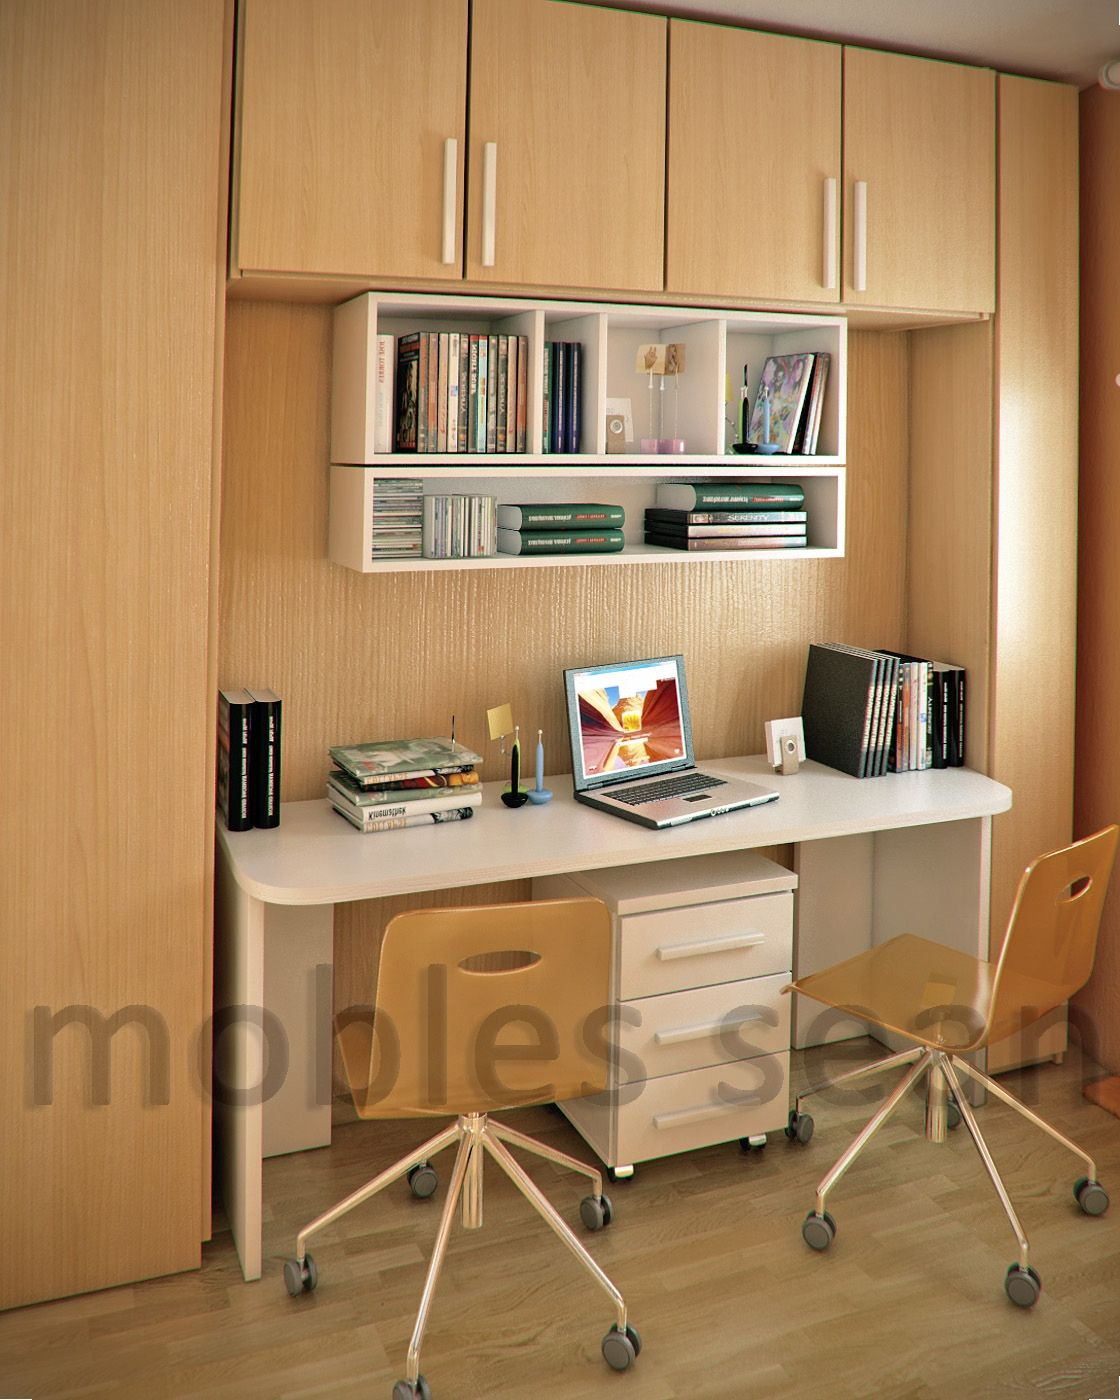 Small Study Room Design Ideas Part - 42: Small Study Room Area With Wood Storage White Wall Shelves Computer Desk  And Swivel Chairs